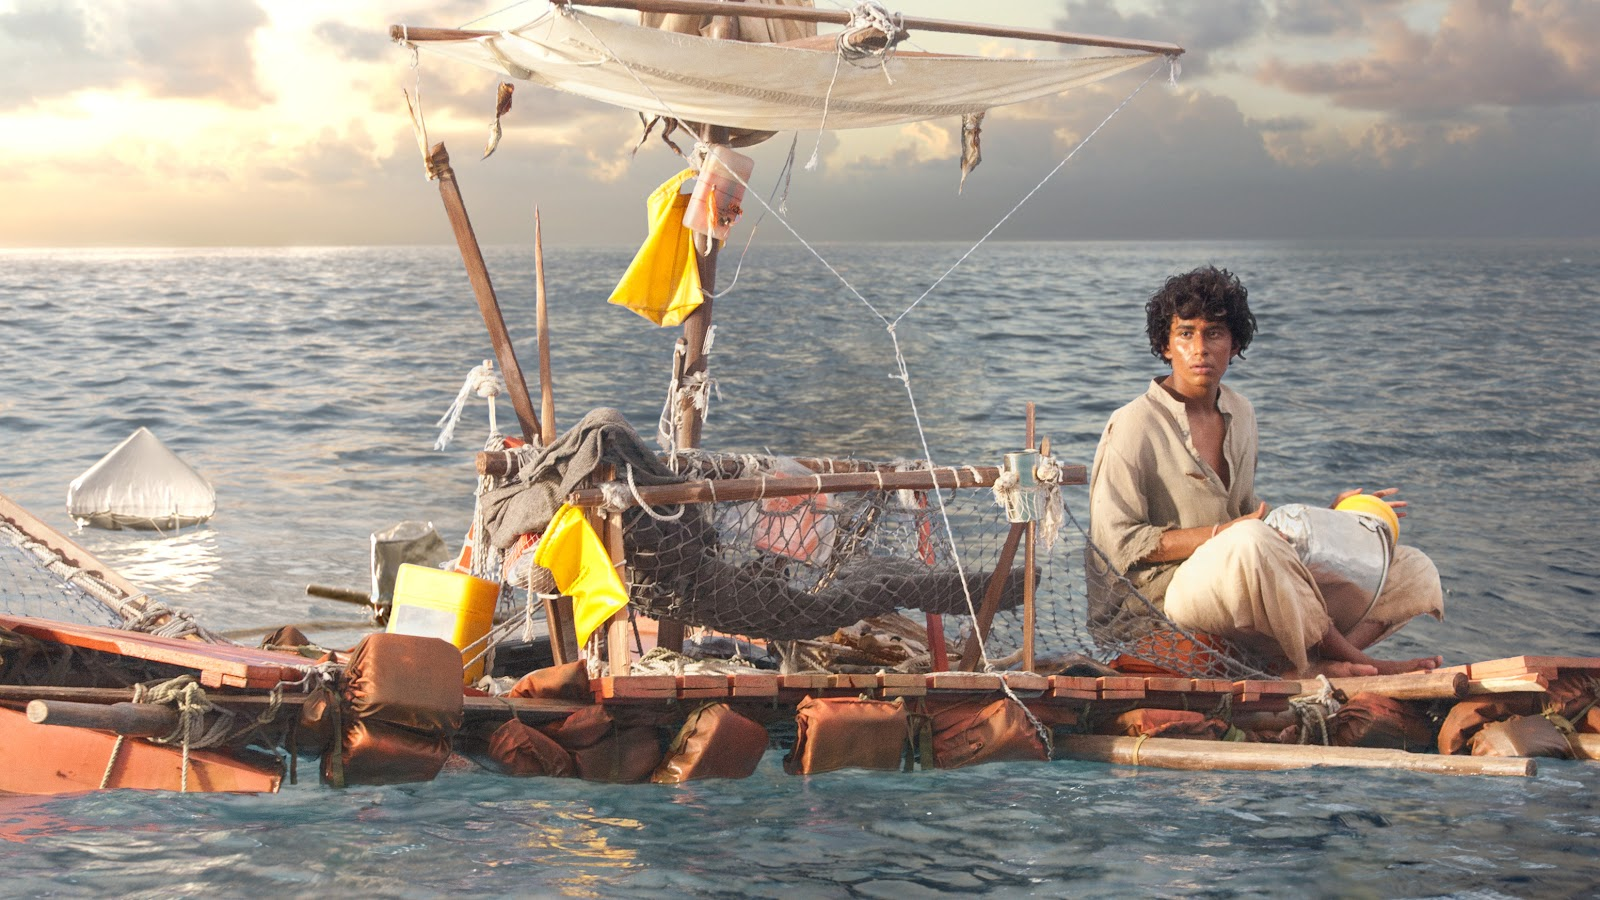 visually stunning wonder life of pi opens in cinemas starting visually stunning wonder life of pi opens in cinemas starting 9